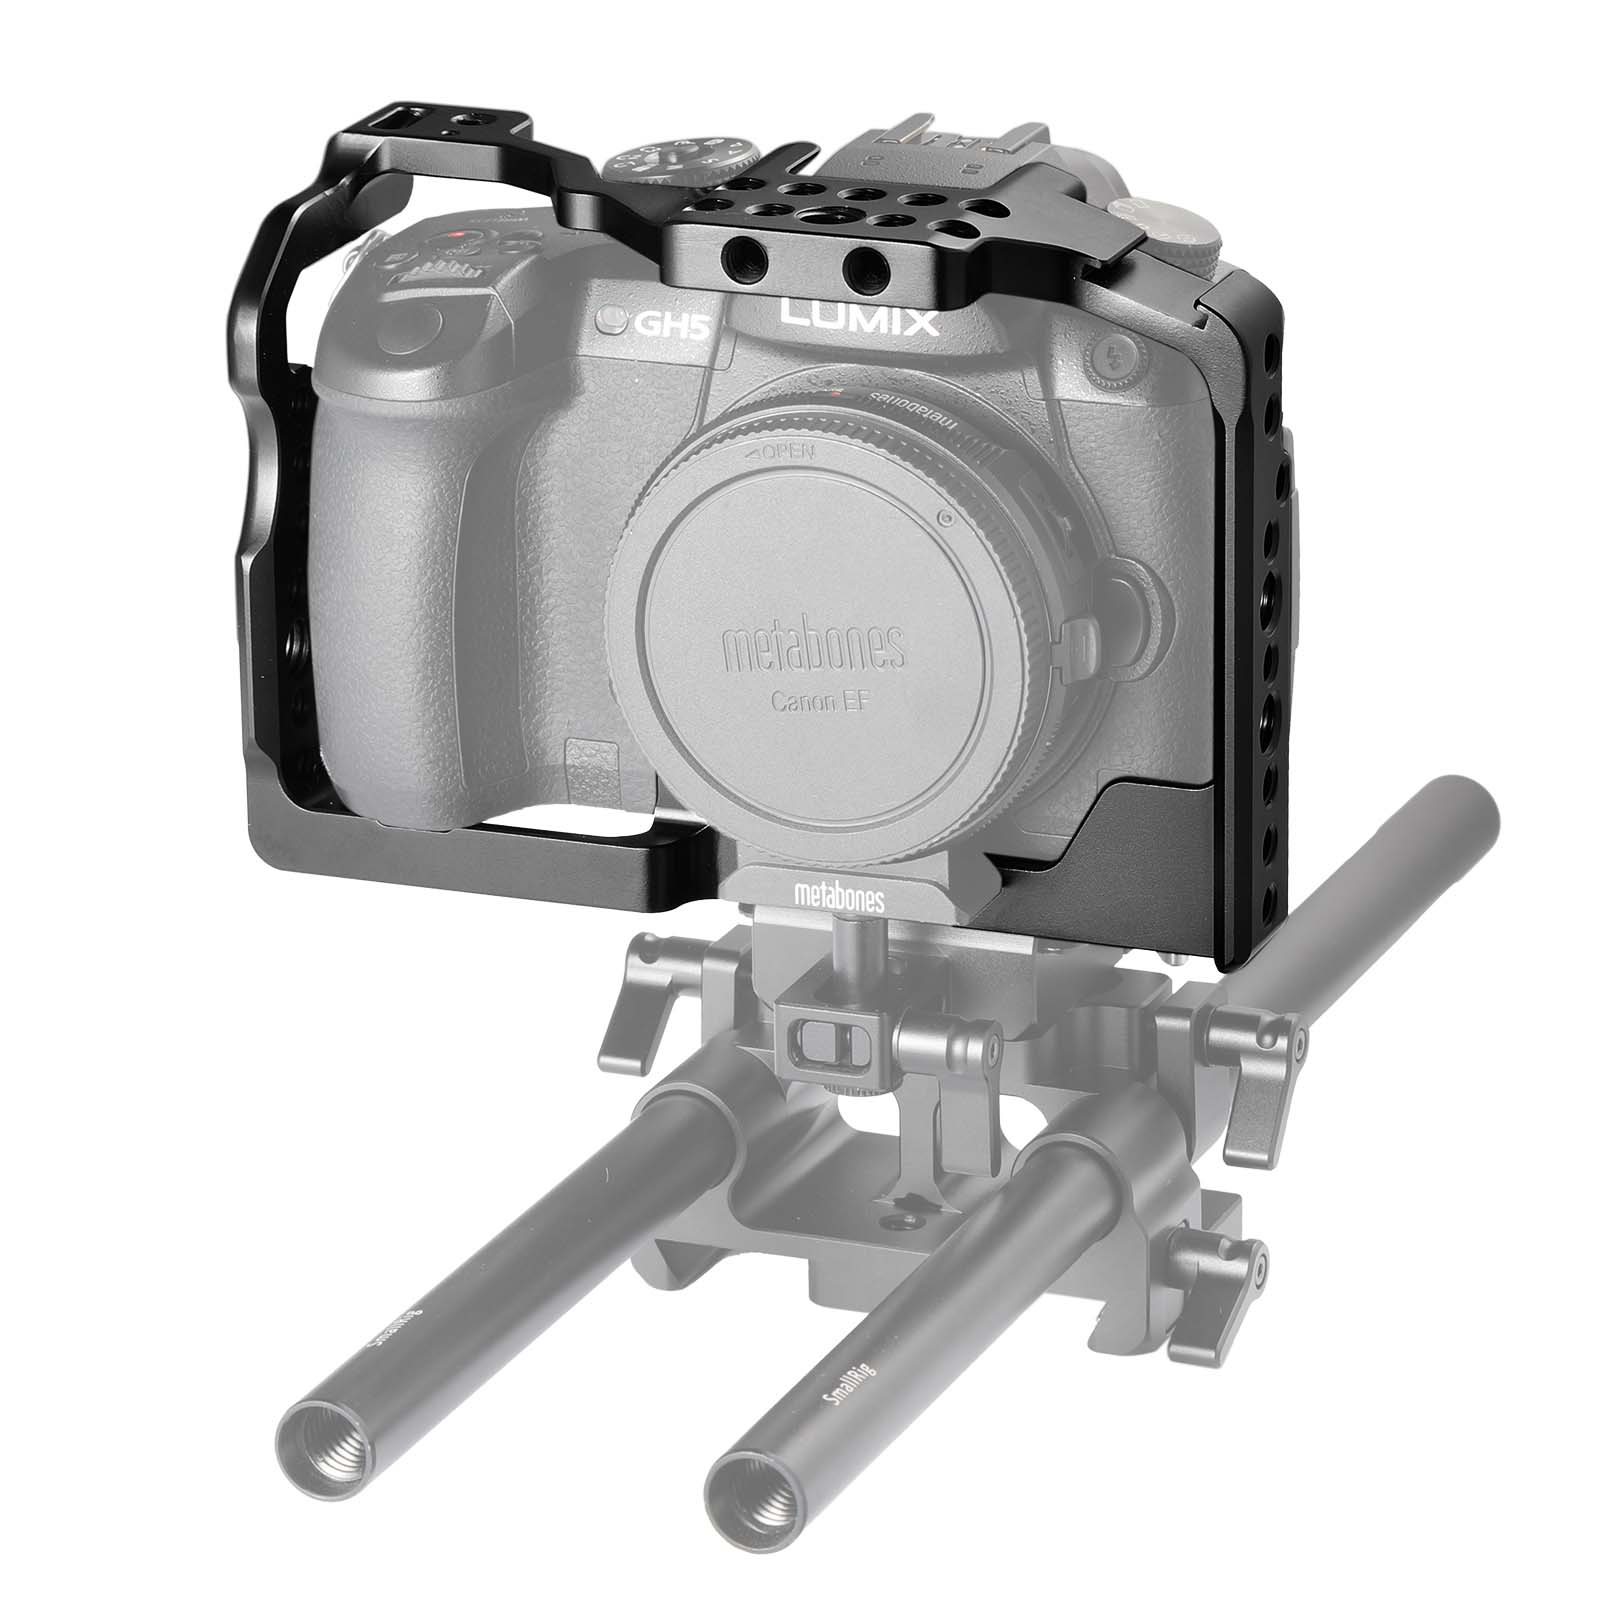 SmallRig Cage for Panasonic Lumix GH5 2049 Video Stabalization Camera Protection panasonic lumix gh5